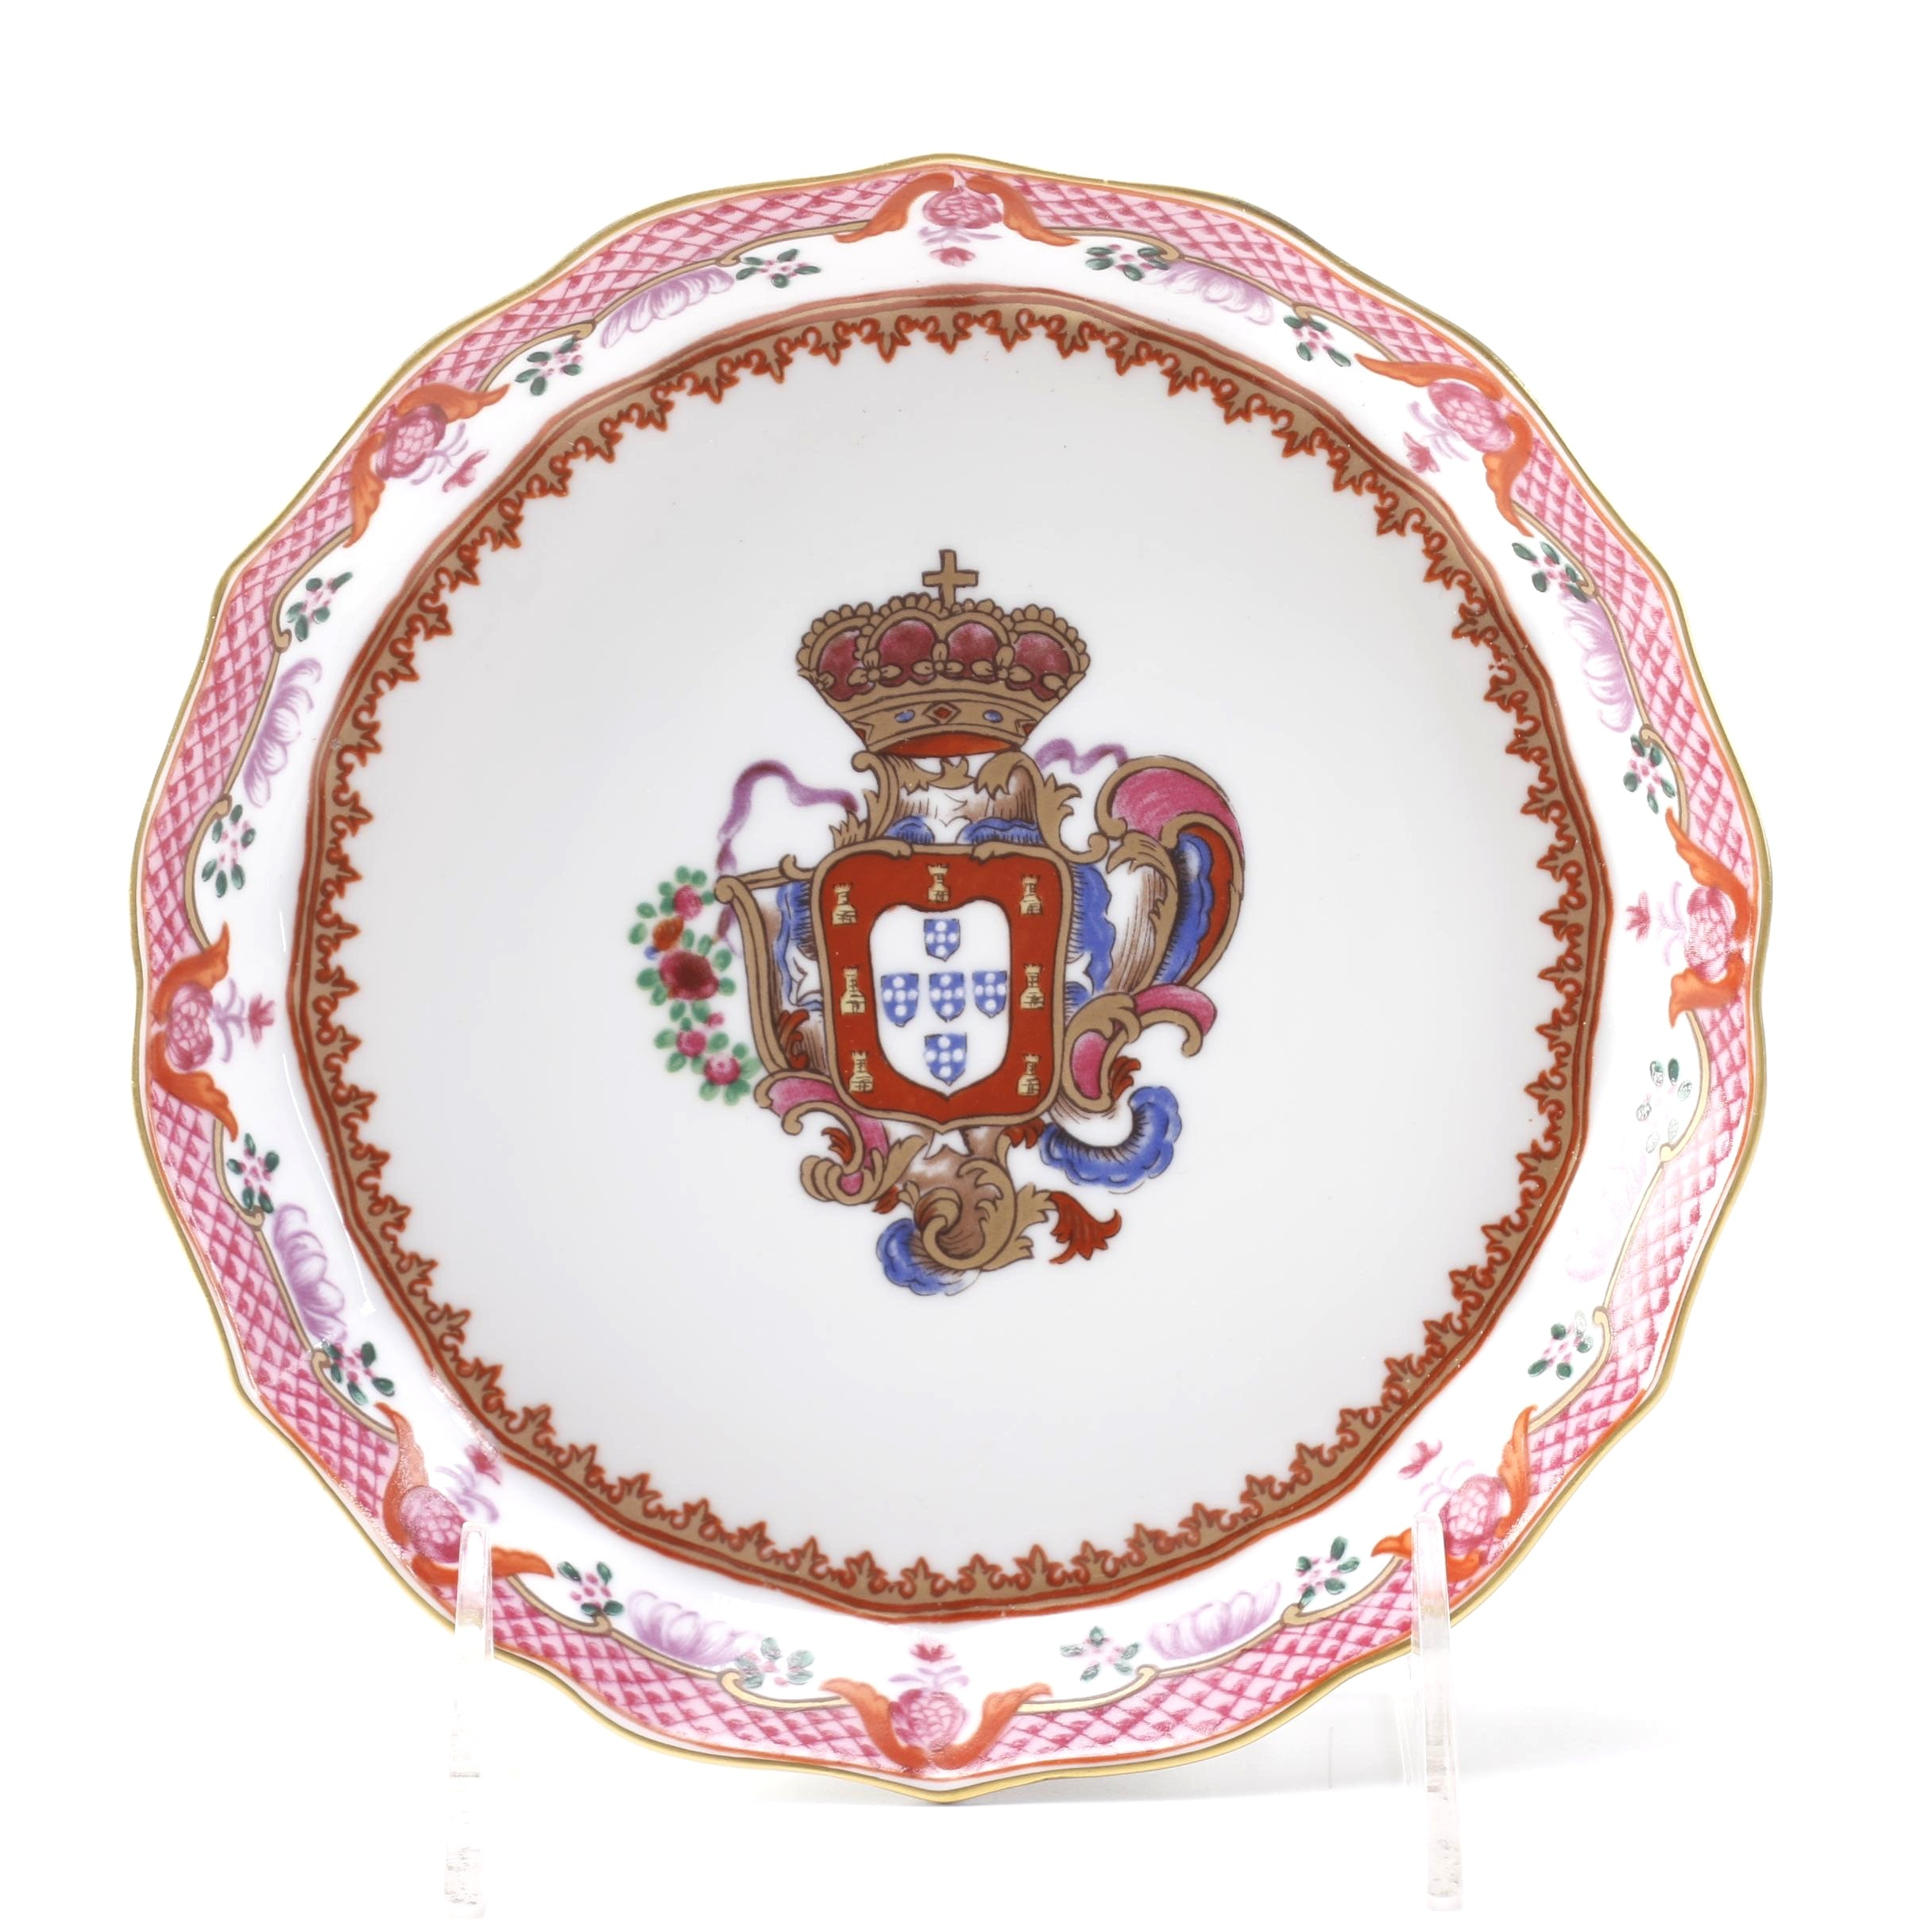 Replica of China Commissioned by King D. Pedro III of Portugal